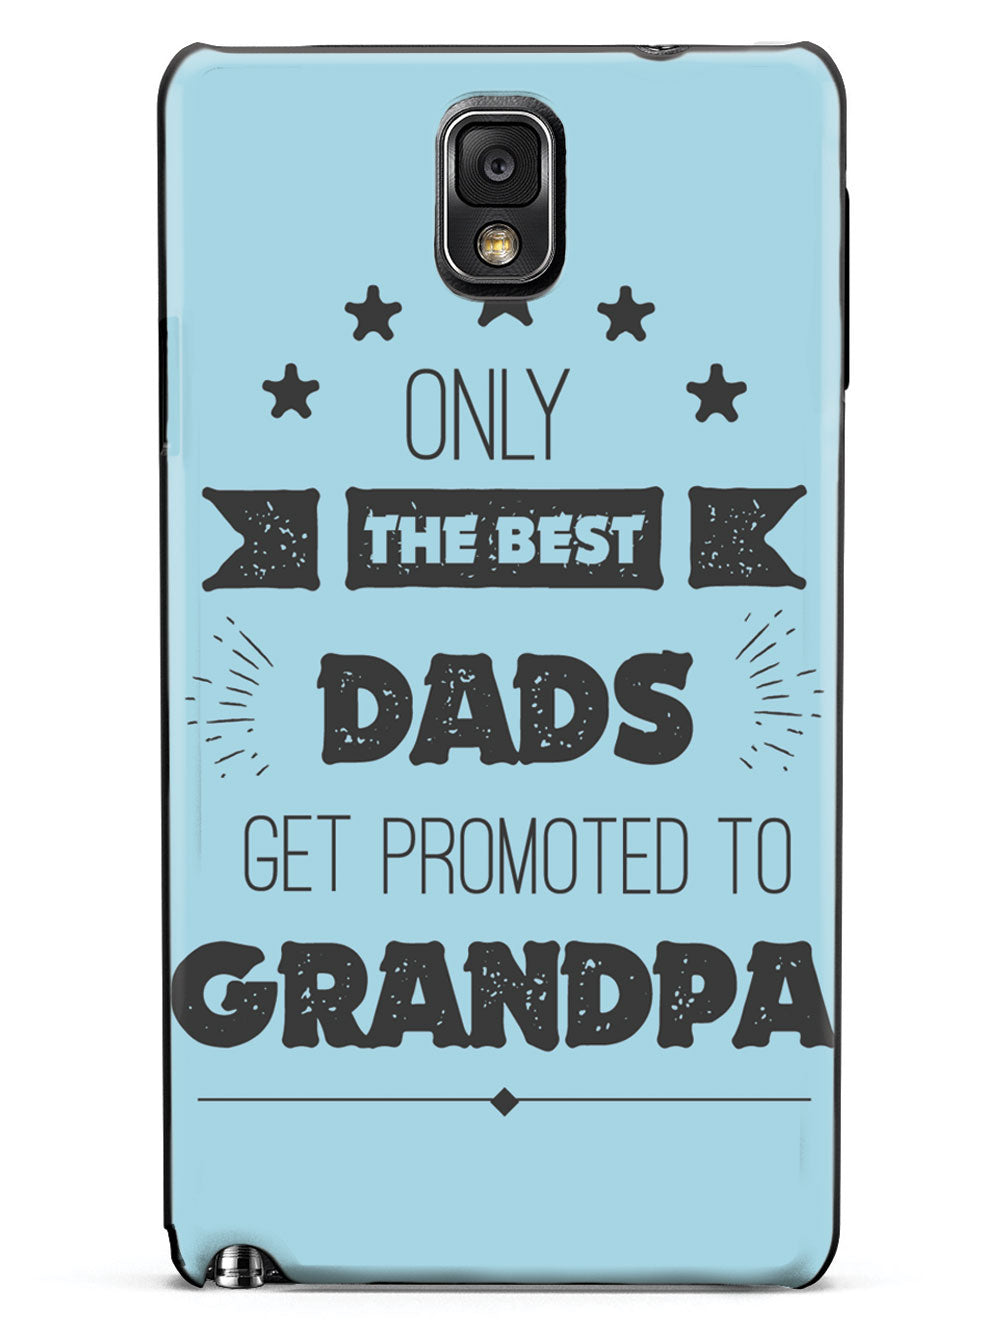 Only The Best Dads - Grandpa - Black Case